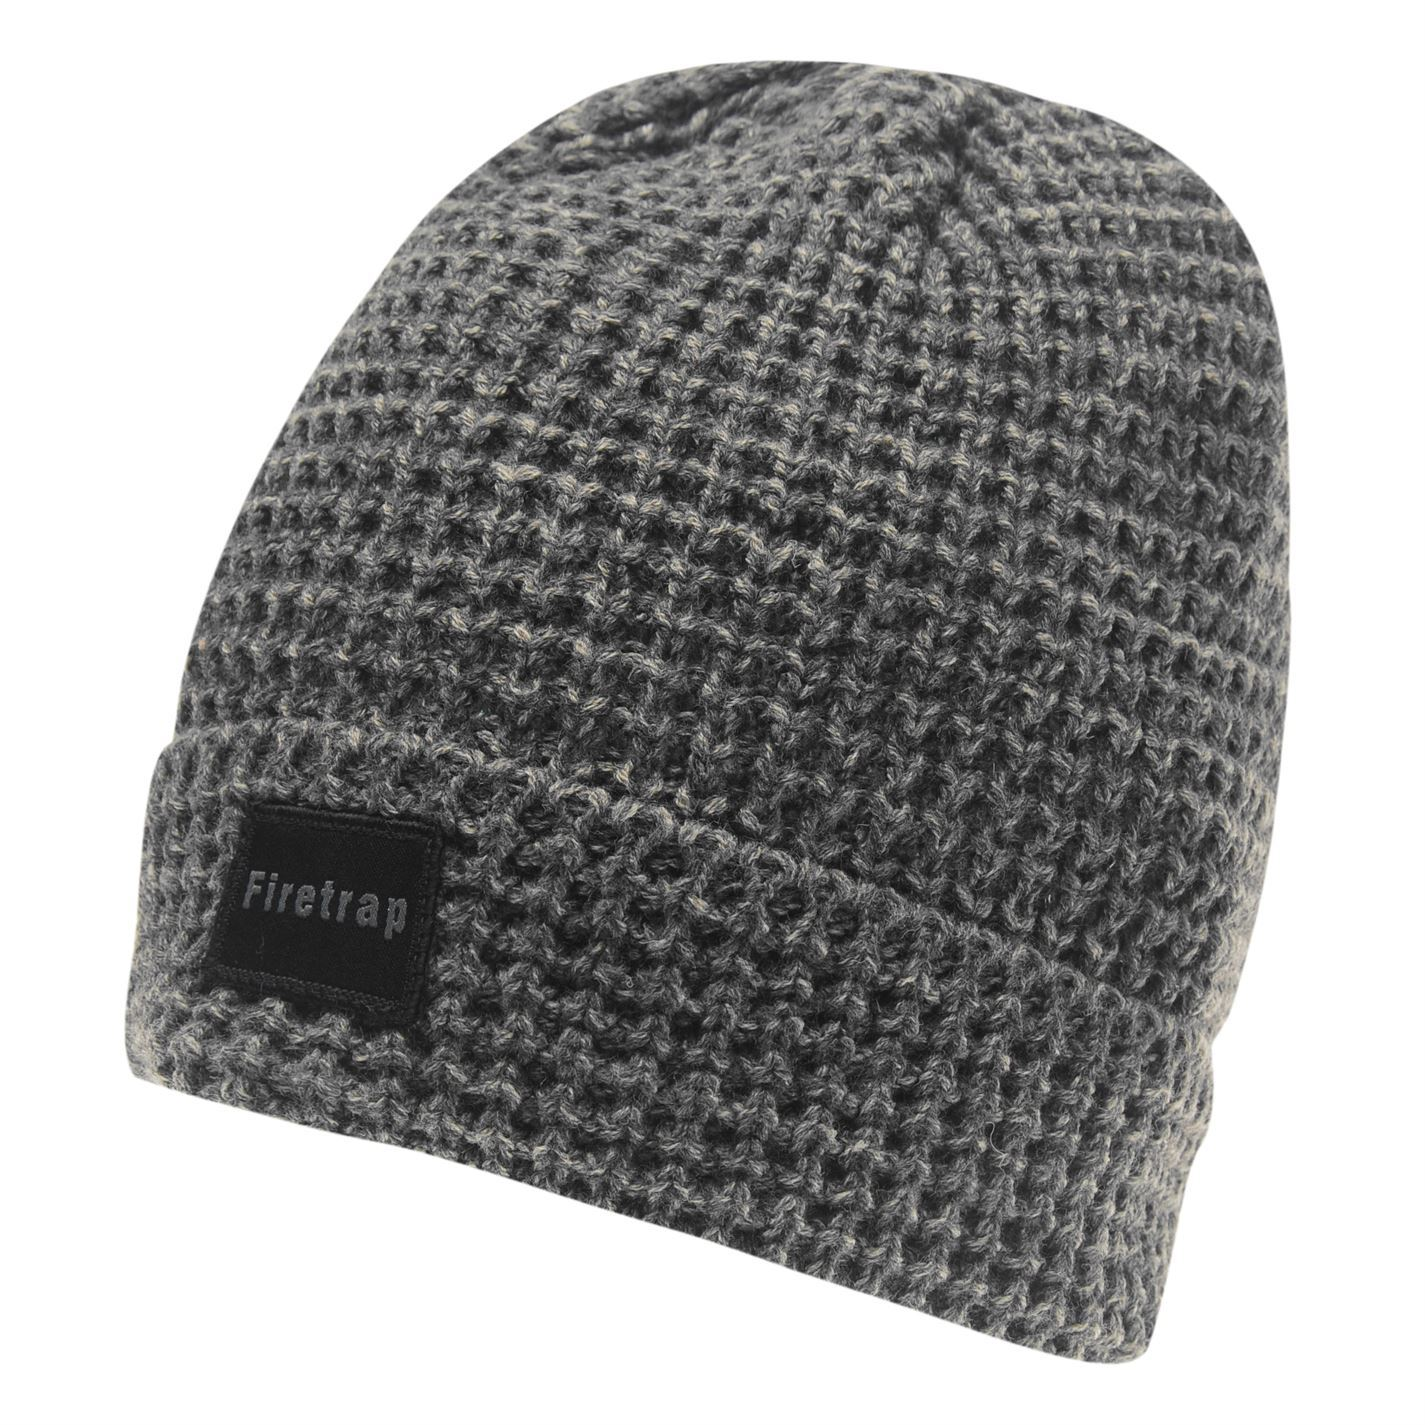 44e92323df3 MENS FIRETRAP GREY MARL CABLE HAT WOOLLY KNIT KNITTED SKI SKIING BOBBLE  BEANIE